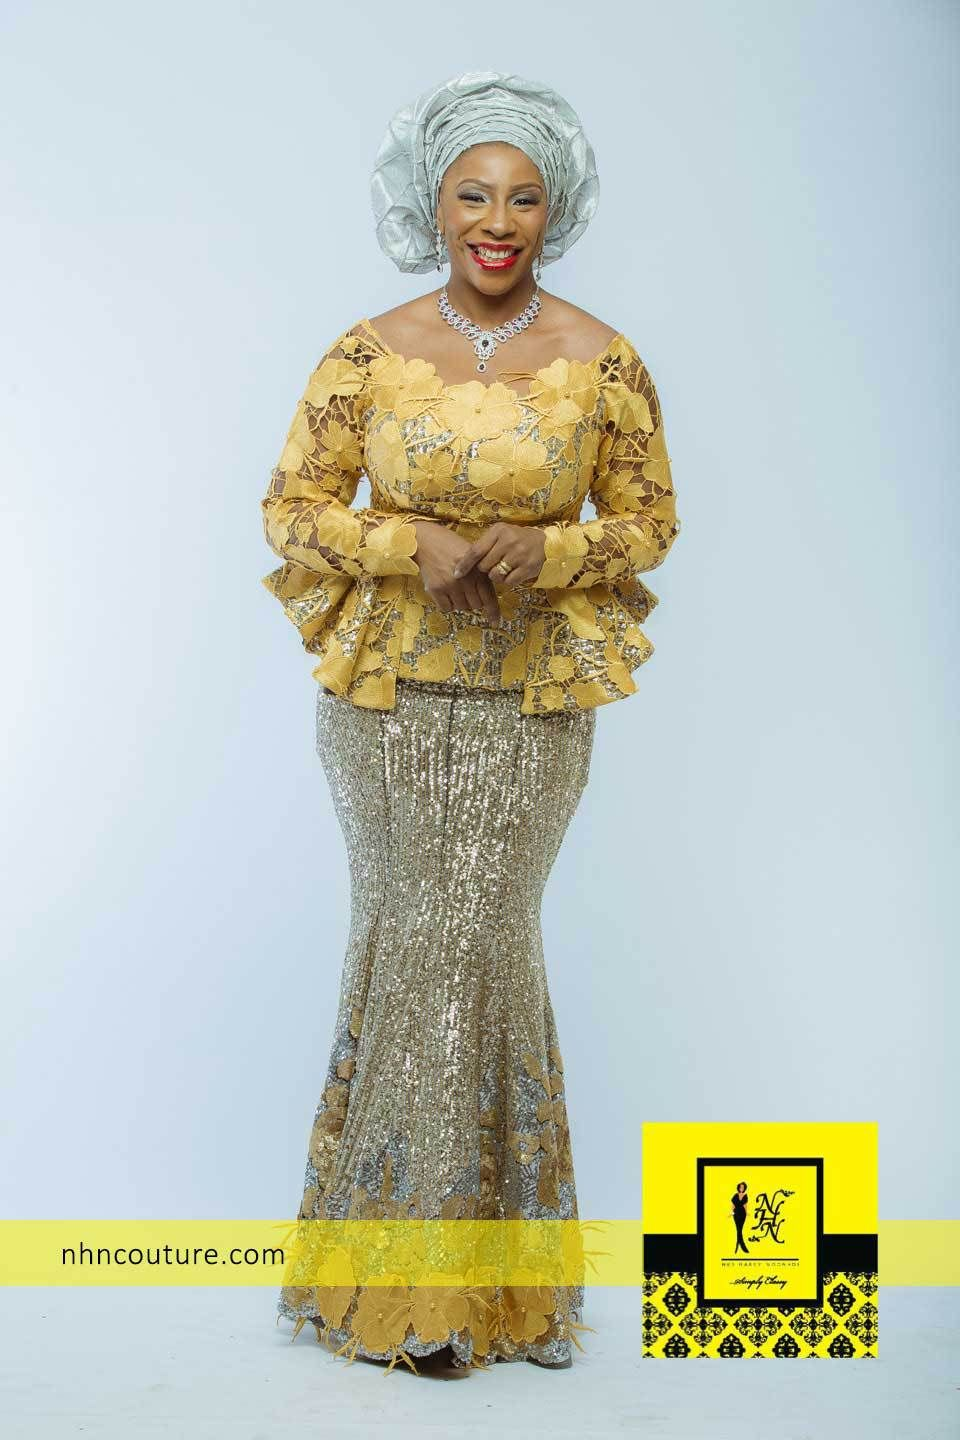 Nhn couture gold ensemble igbo tops wrapper pinterest for African lace wedding dress